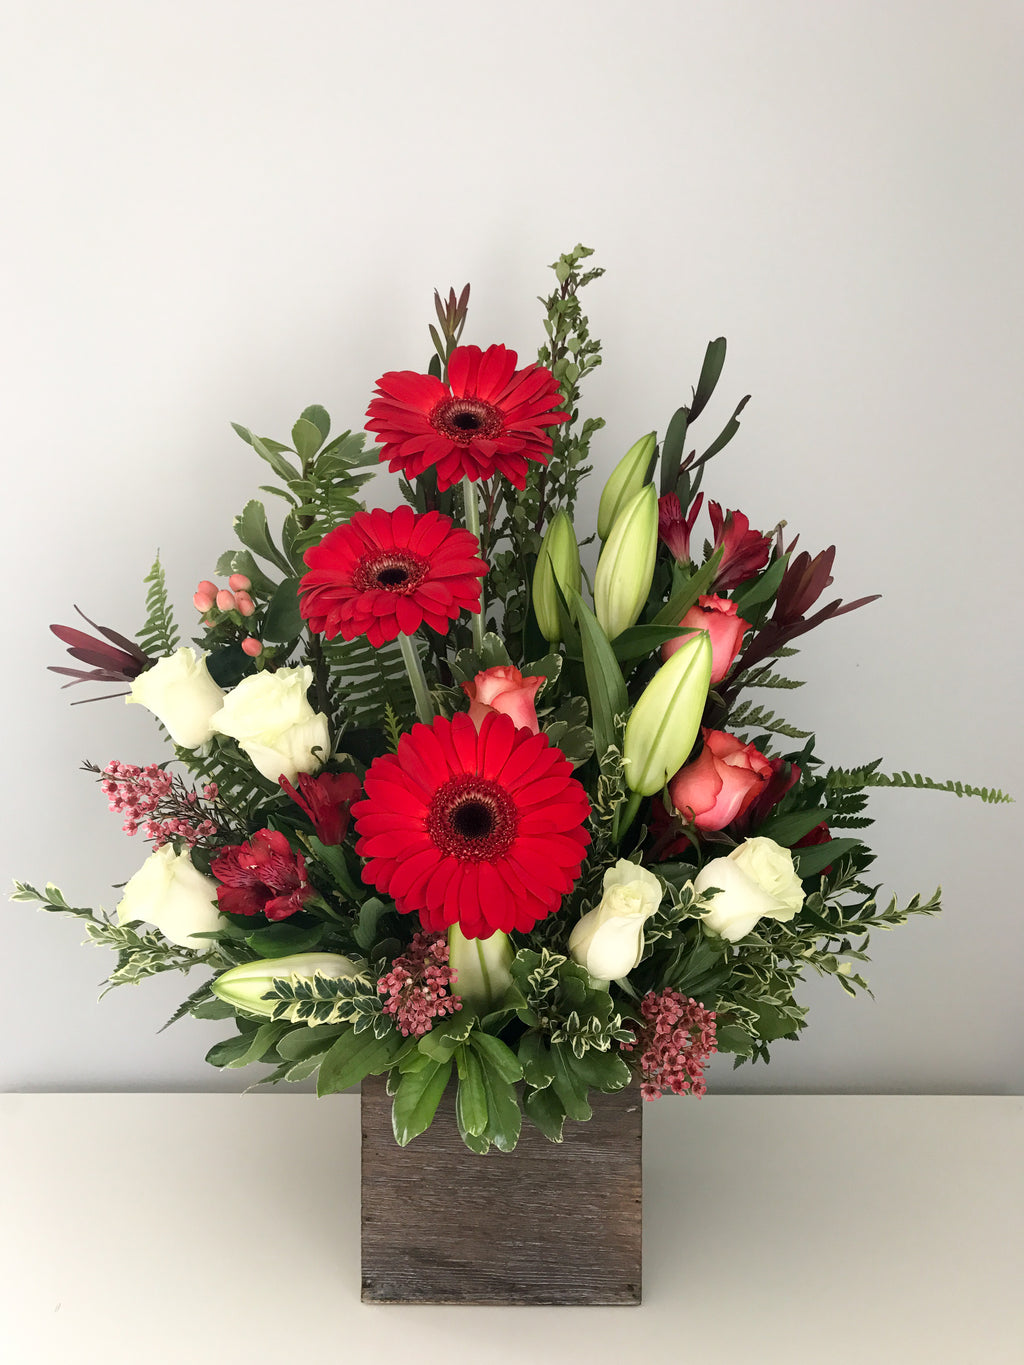 Warm Embrace - Sympathy Arrangement